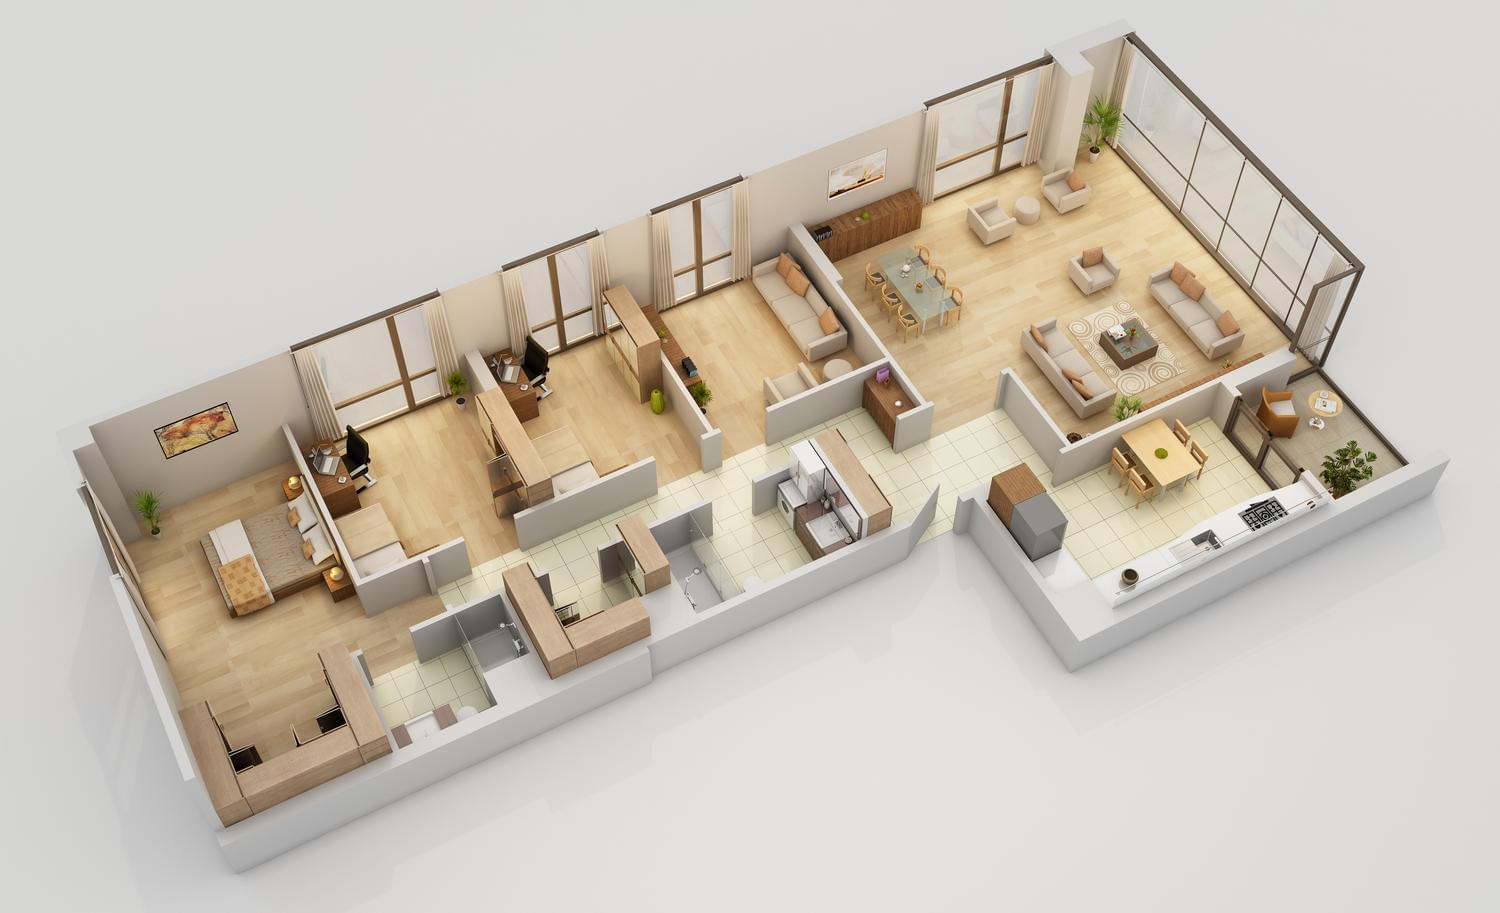 3D Floor Plan Modeling & Rendering by YFguney - 113234